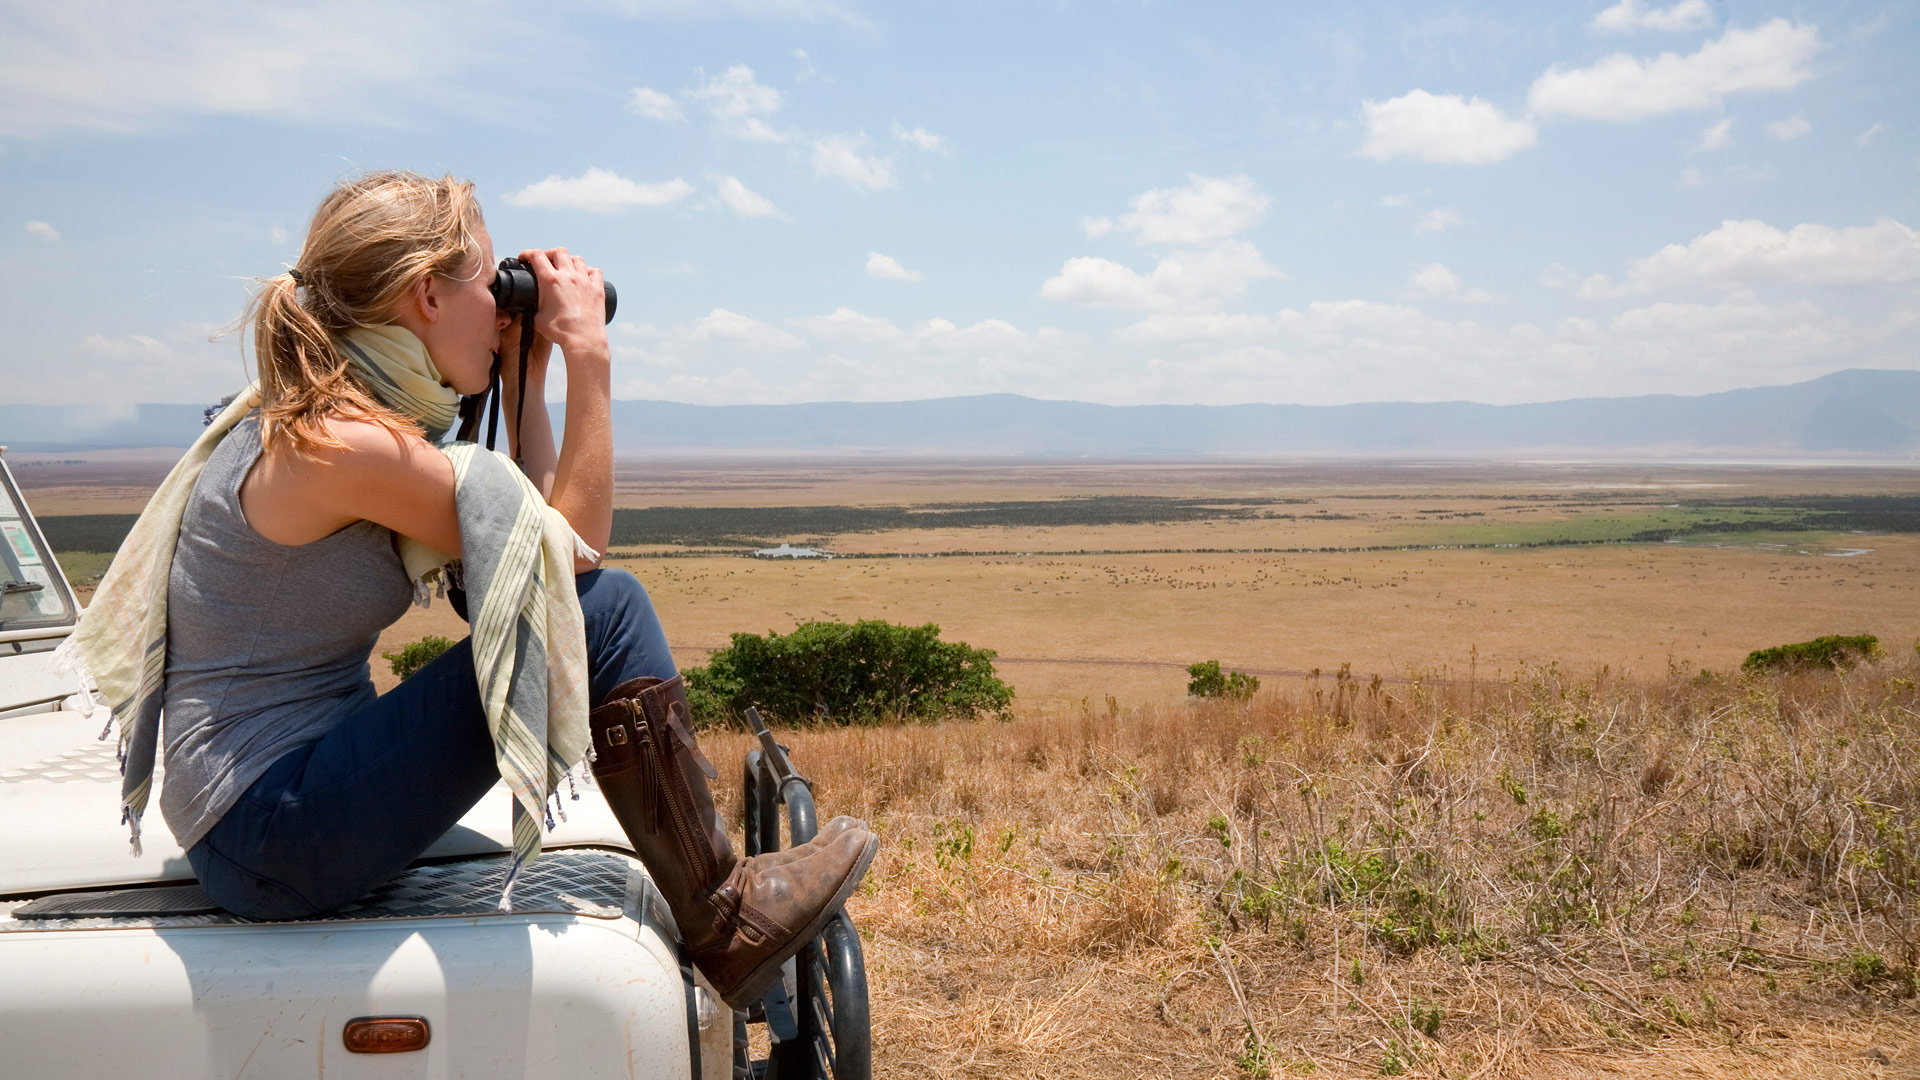 A woman on safari looking for wildlife in Tanzania from the hood of a Land Rover.